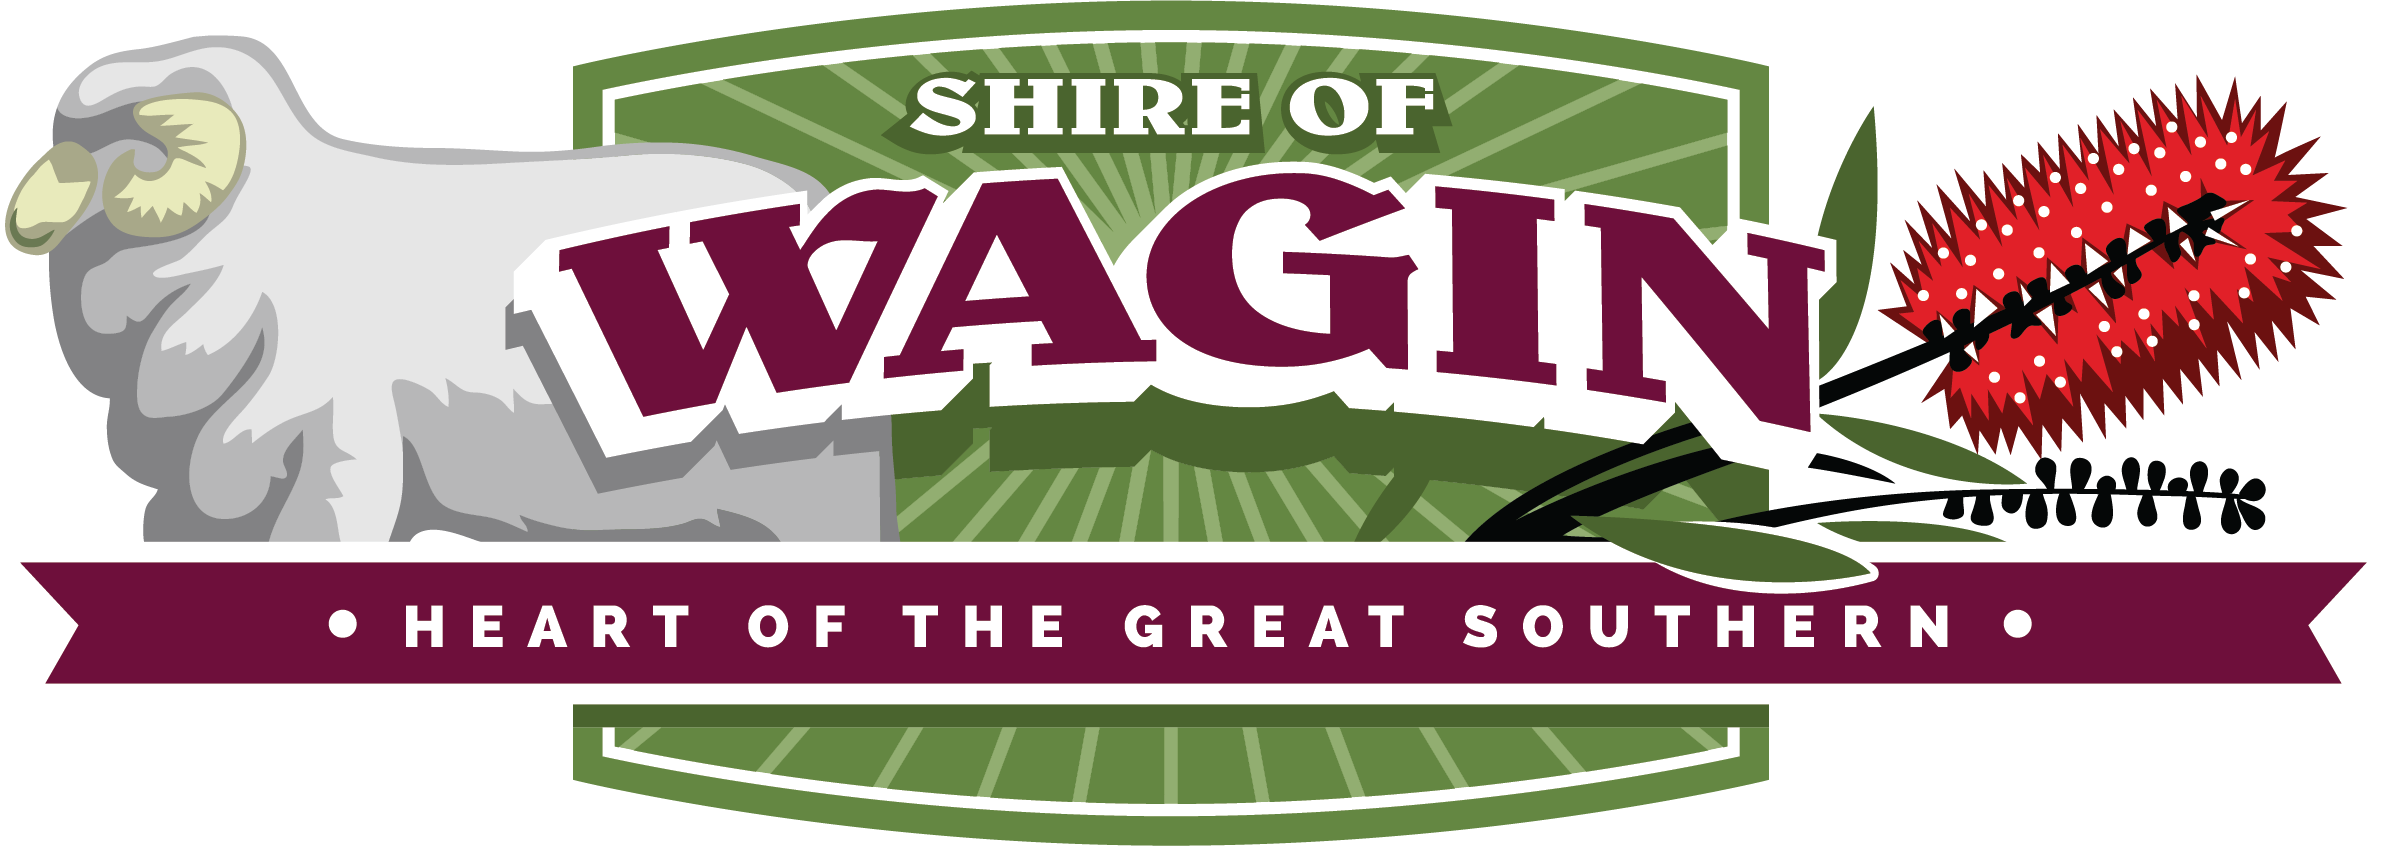 Shire of Wagin